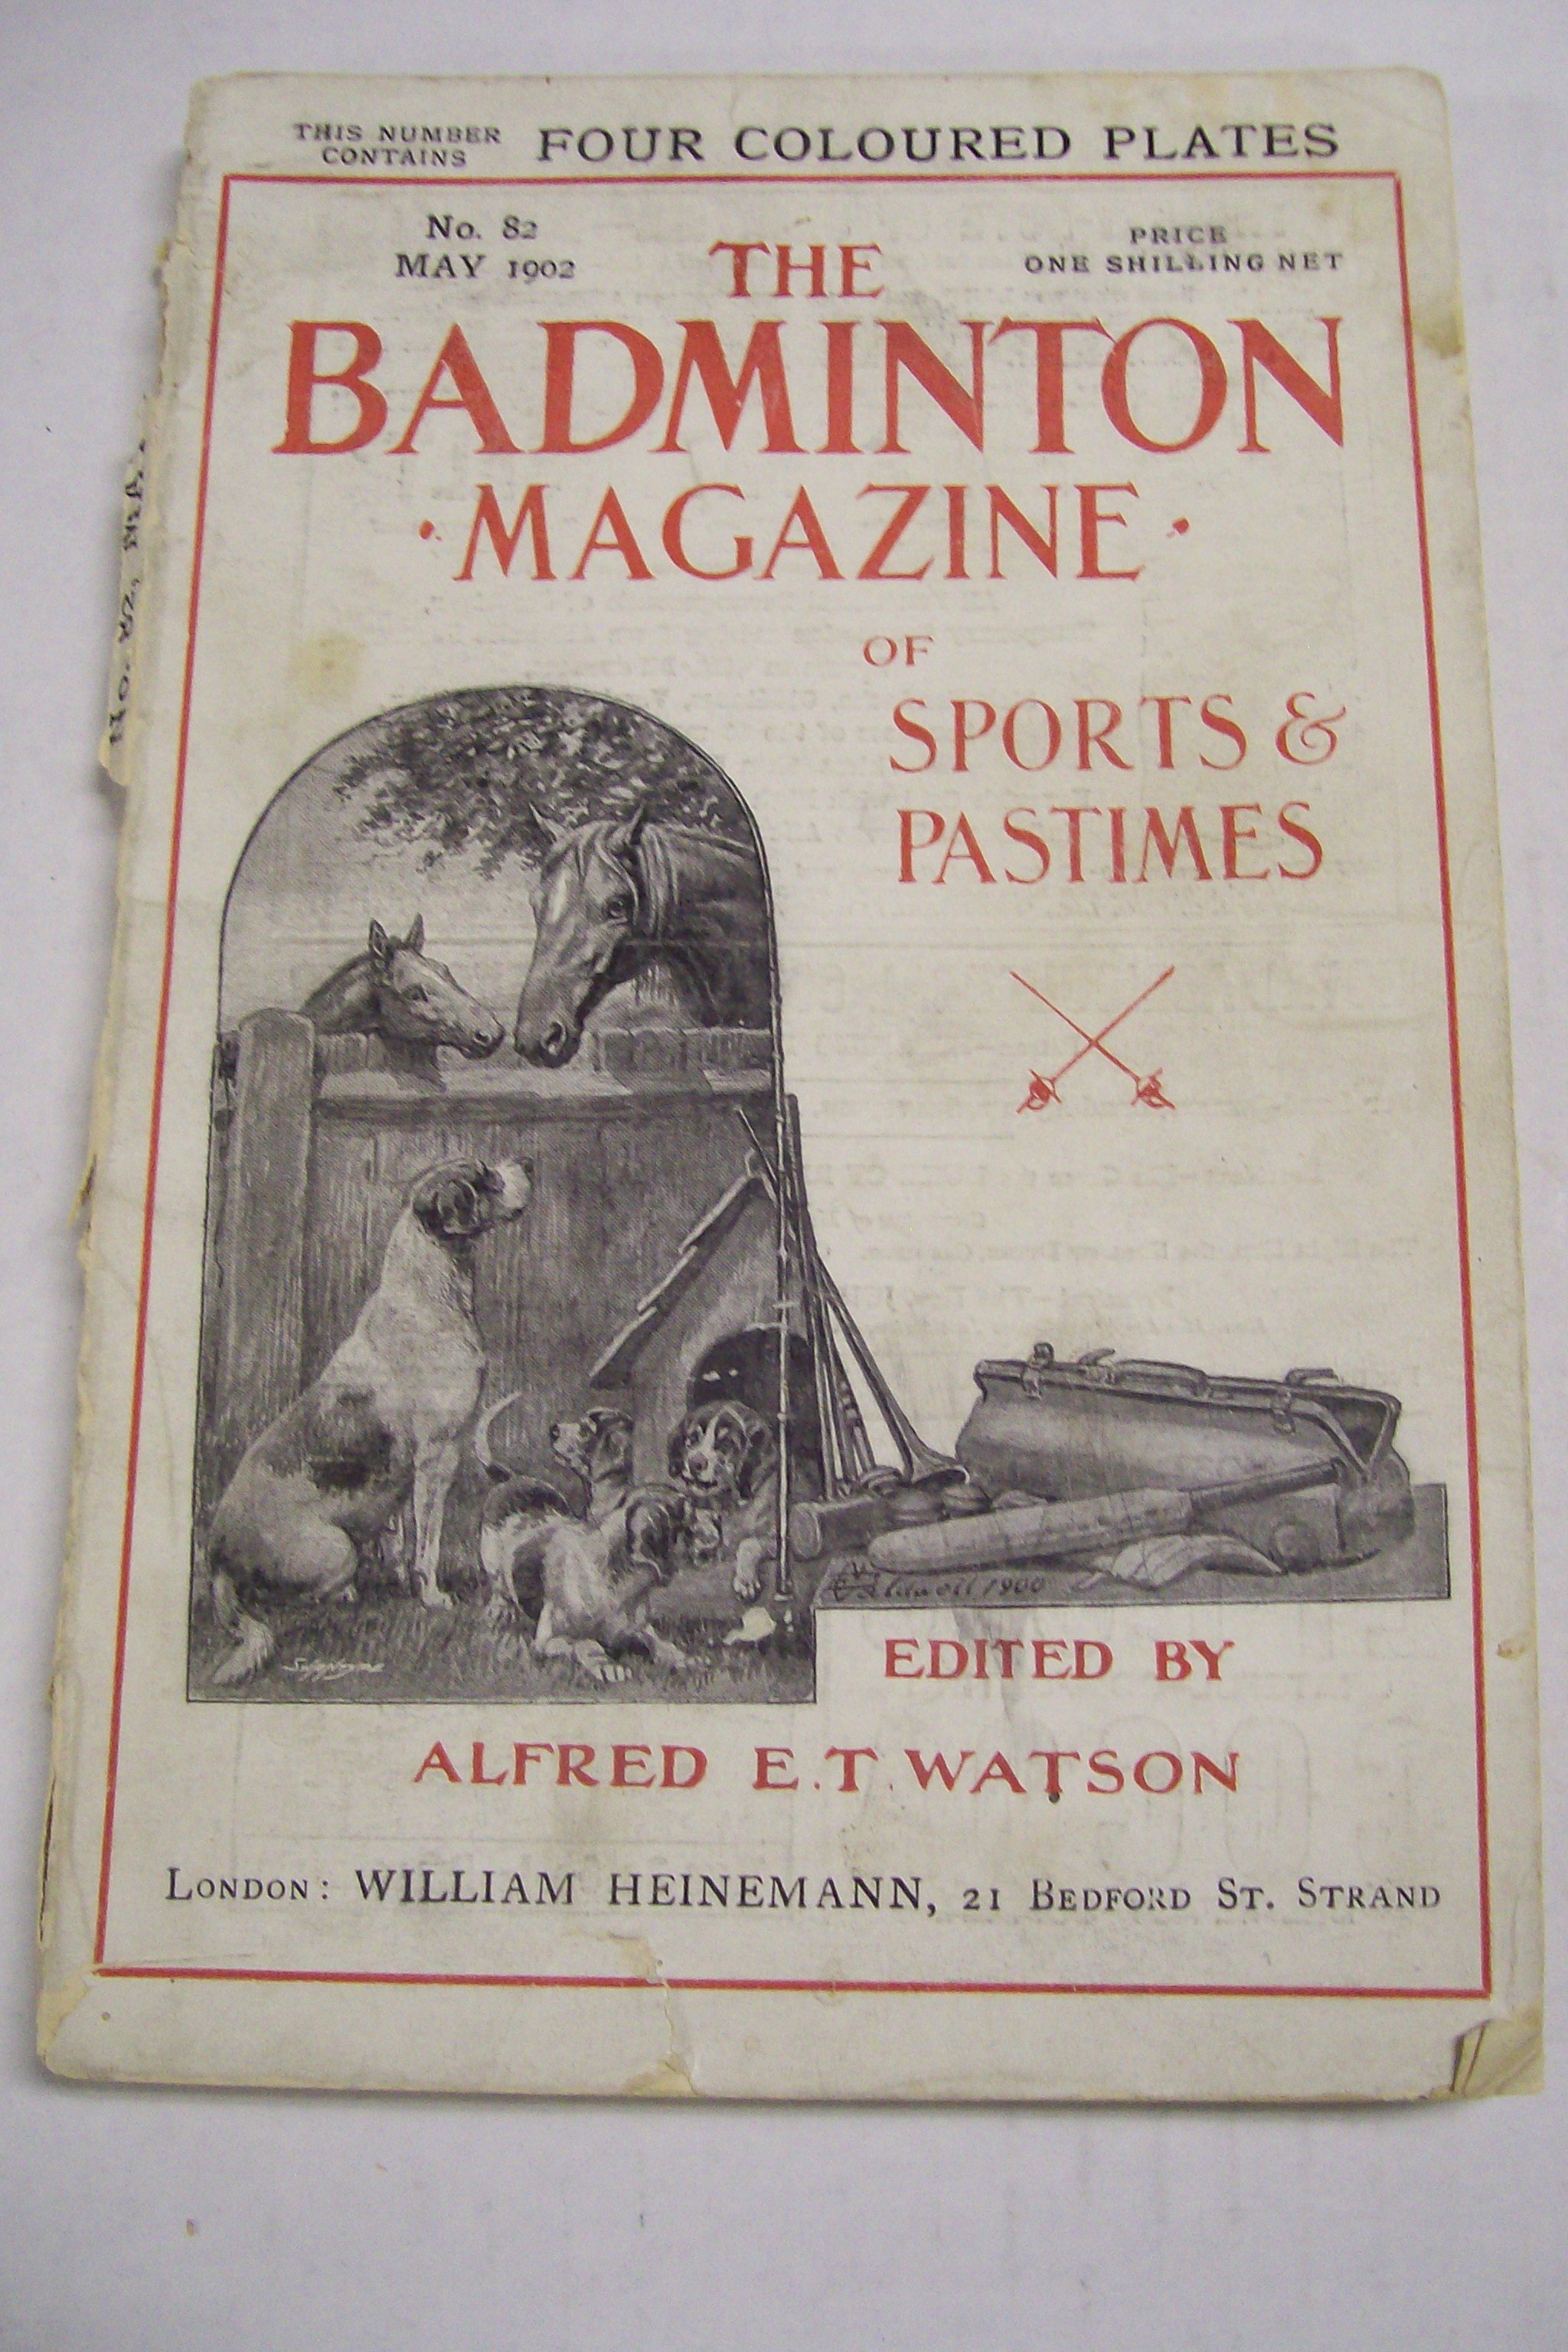 The Badminton Magazine of Sports & Pastimes May, 1902